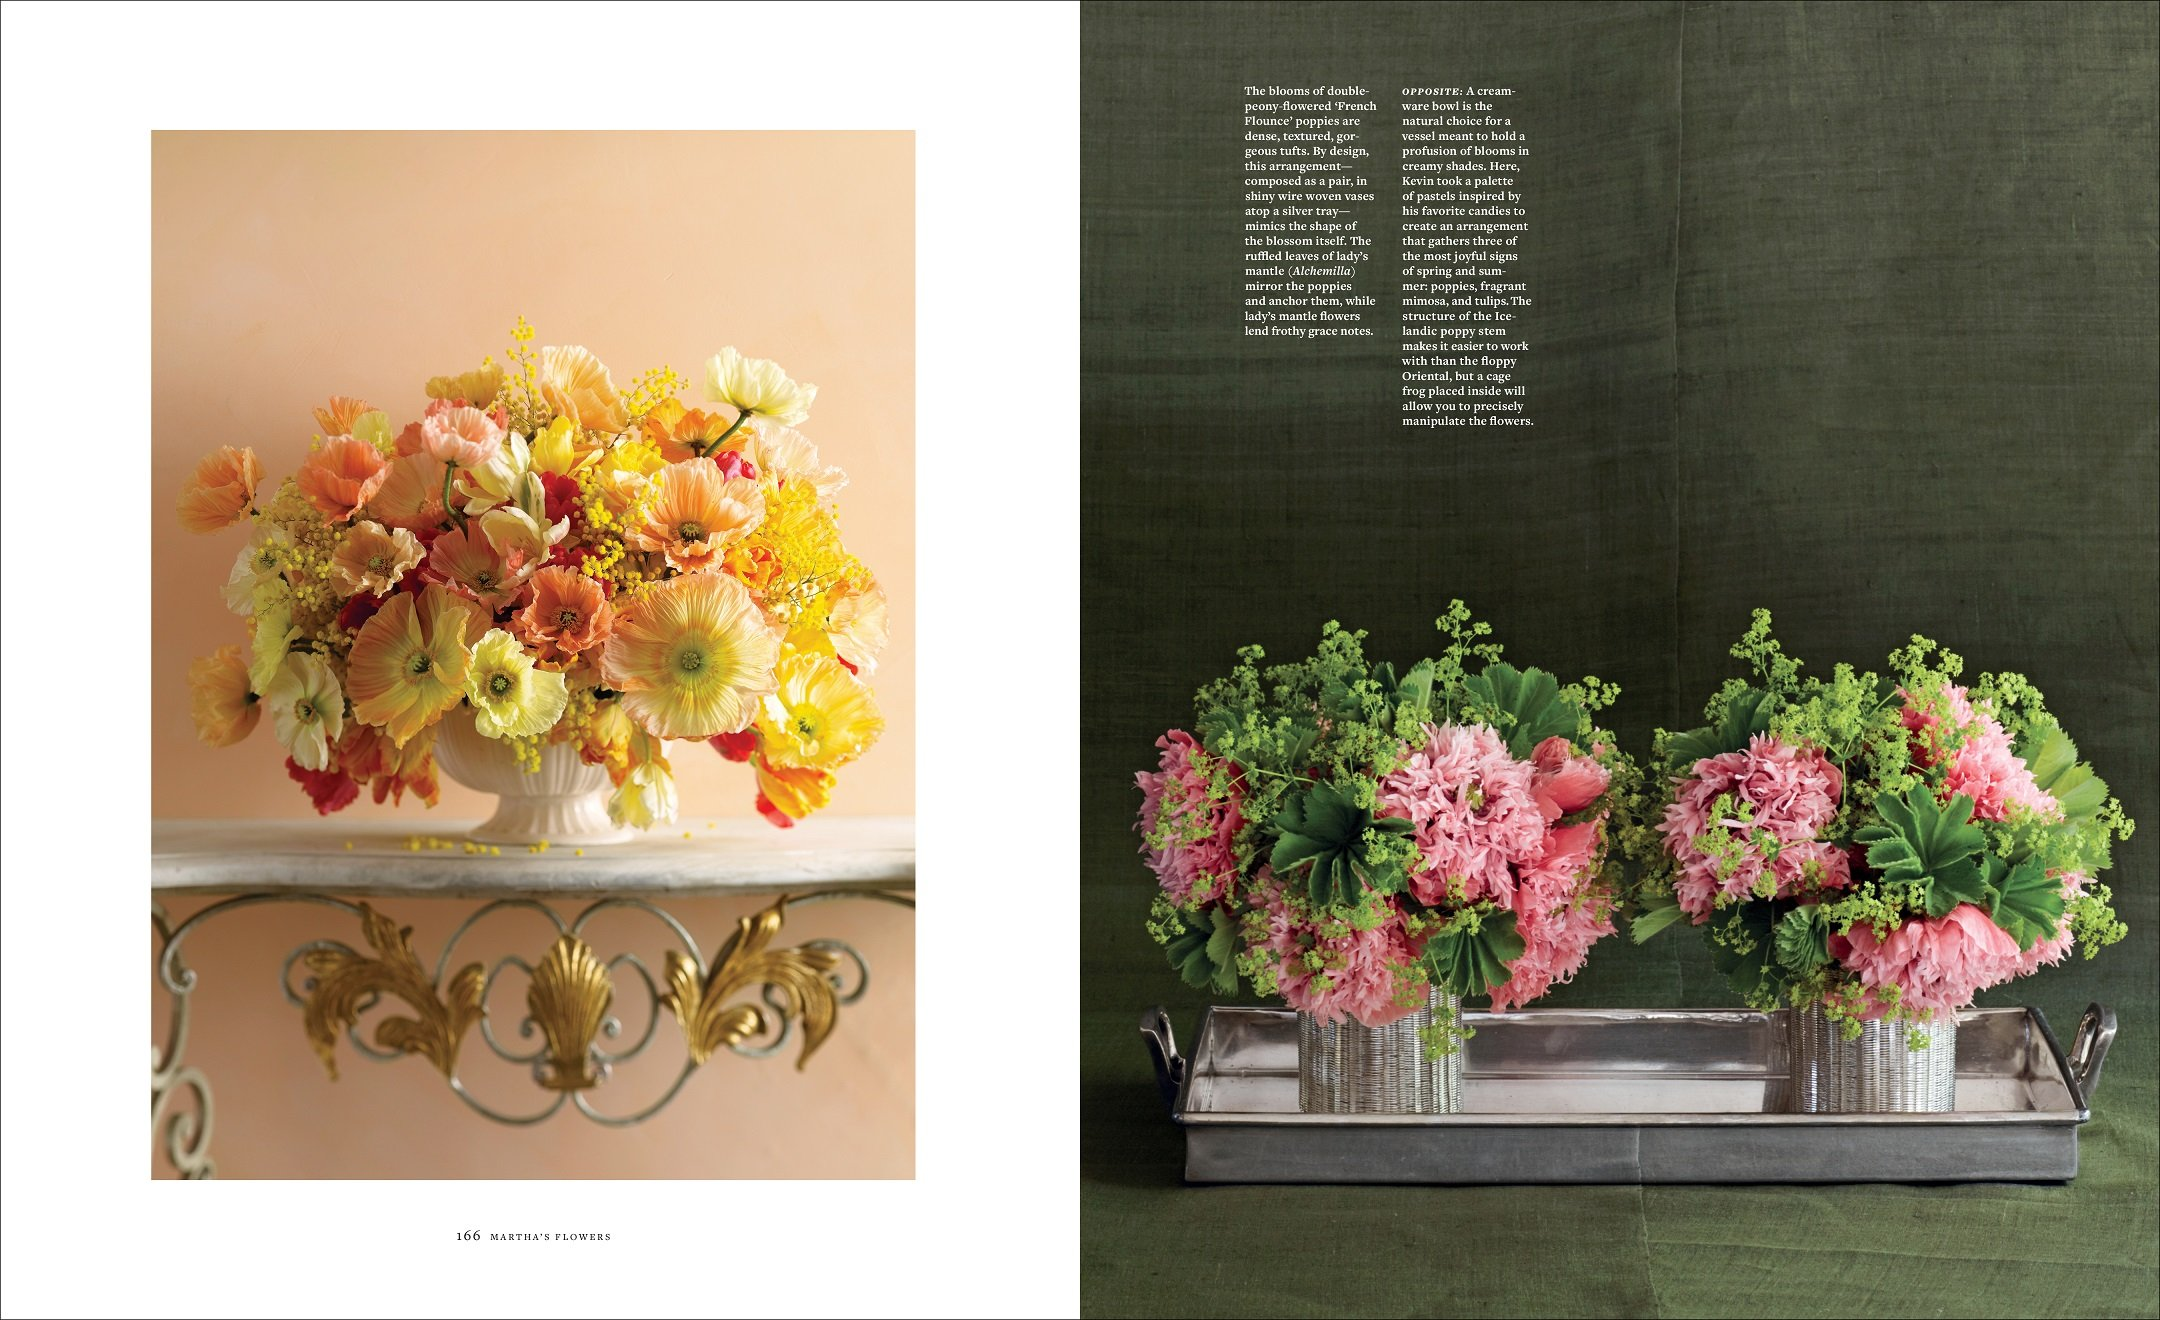 What-I'm-reading-Right-Now-Martha's-Flowers-Doreen-Chambers-Luxury-Interior-Design-Brooklyn-NewYork-South-Florida